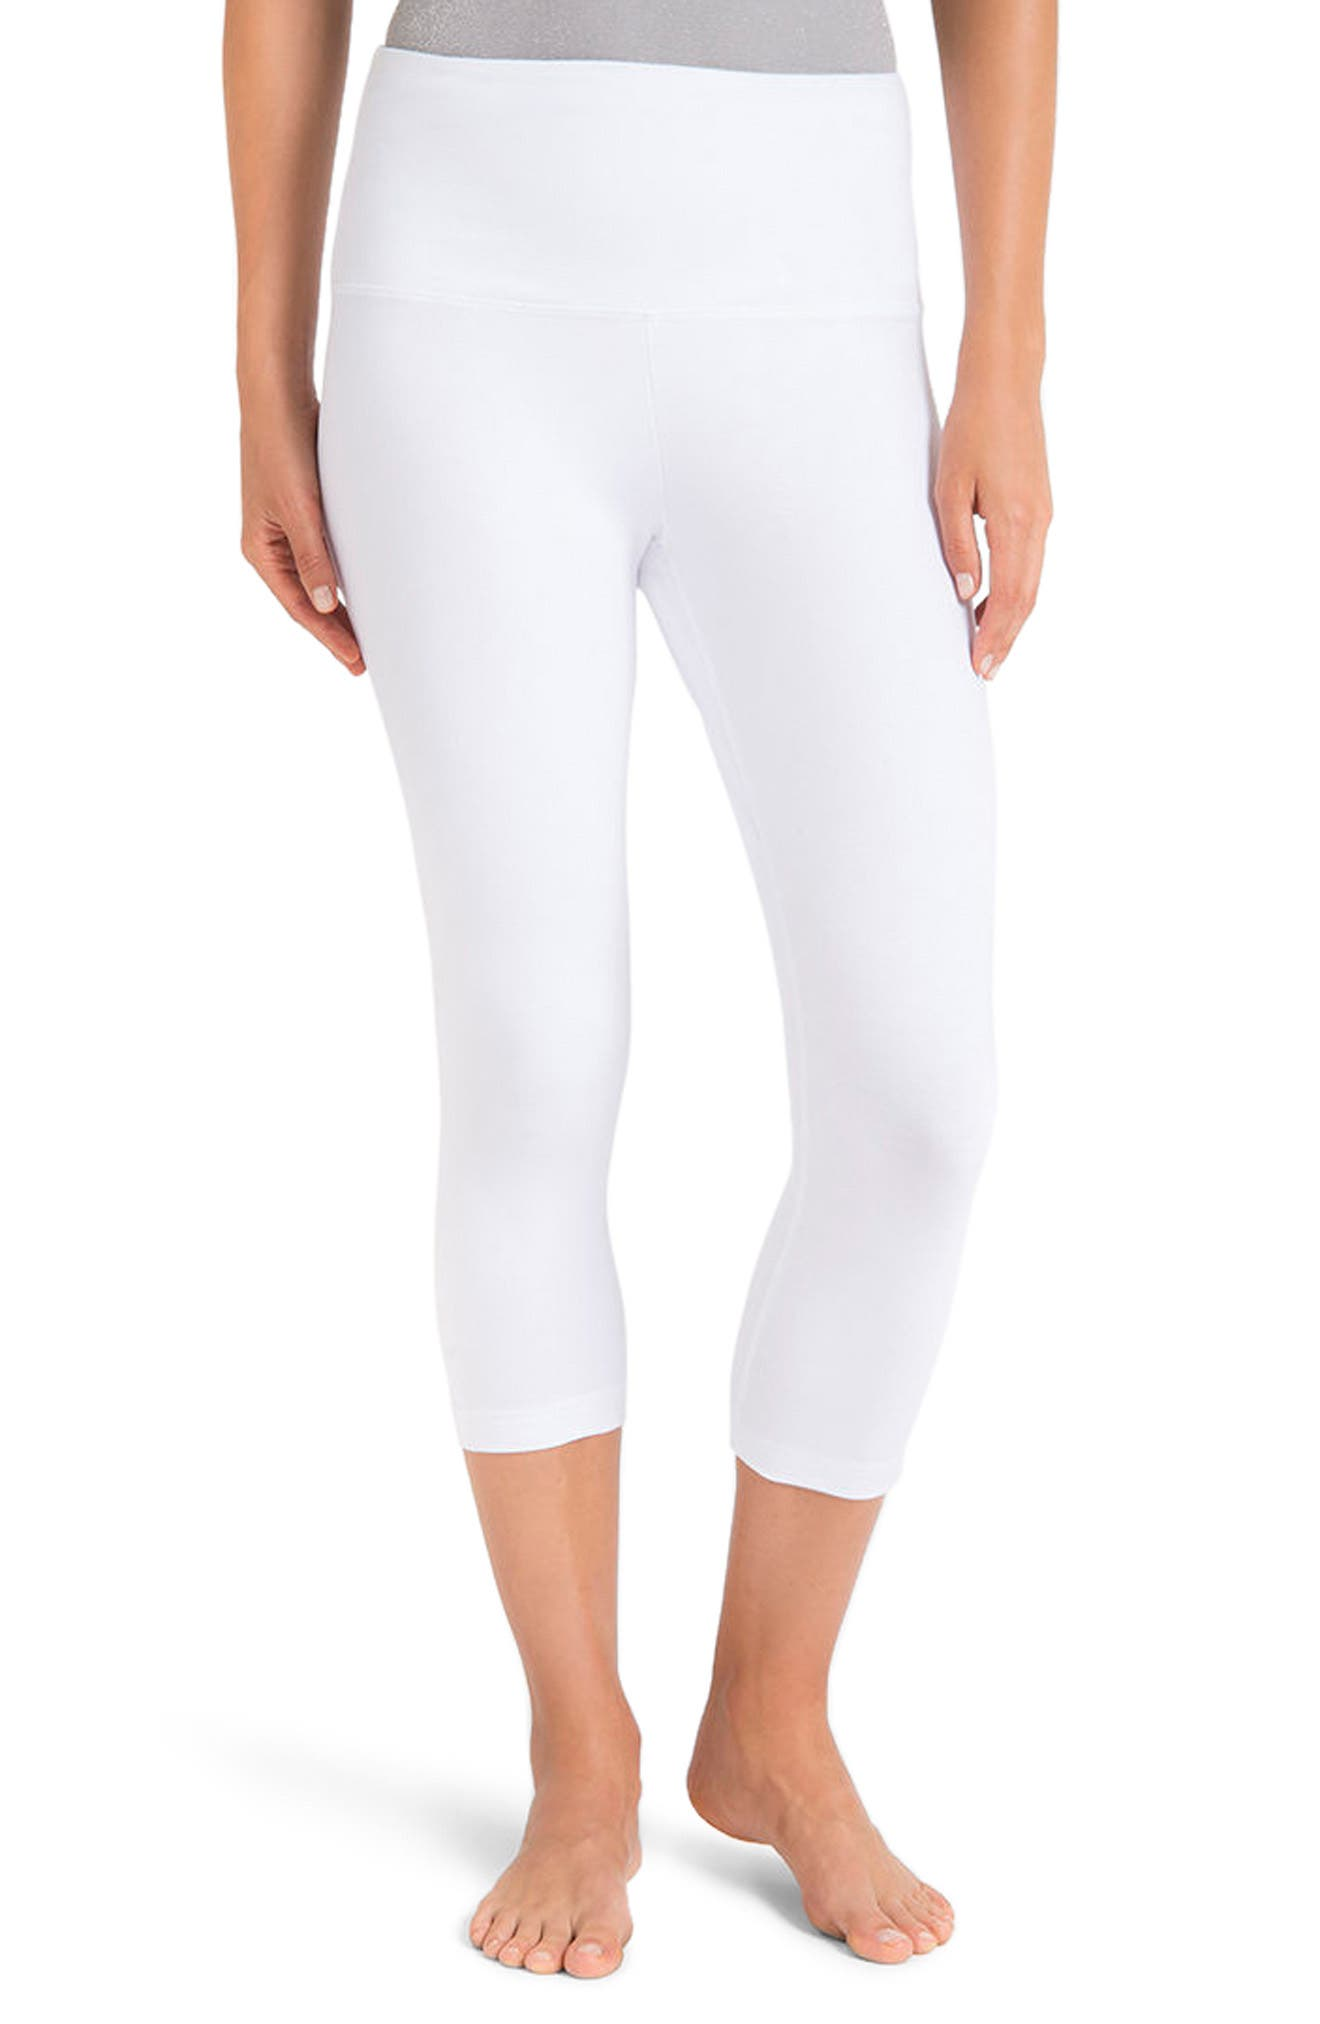 Main Image - Lyssé Control Top High Waist Capris